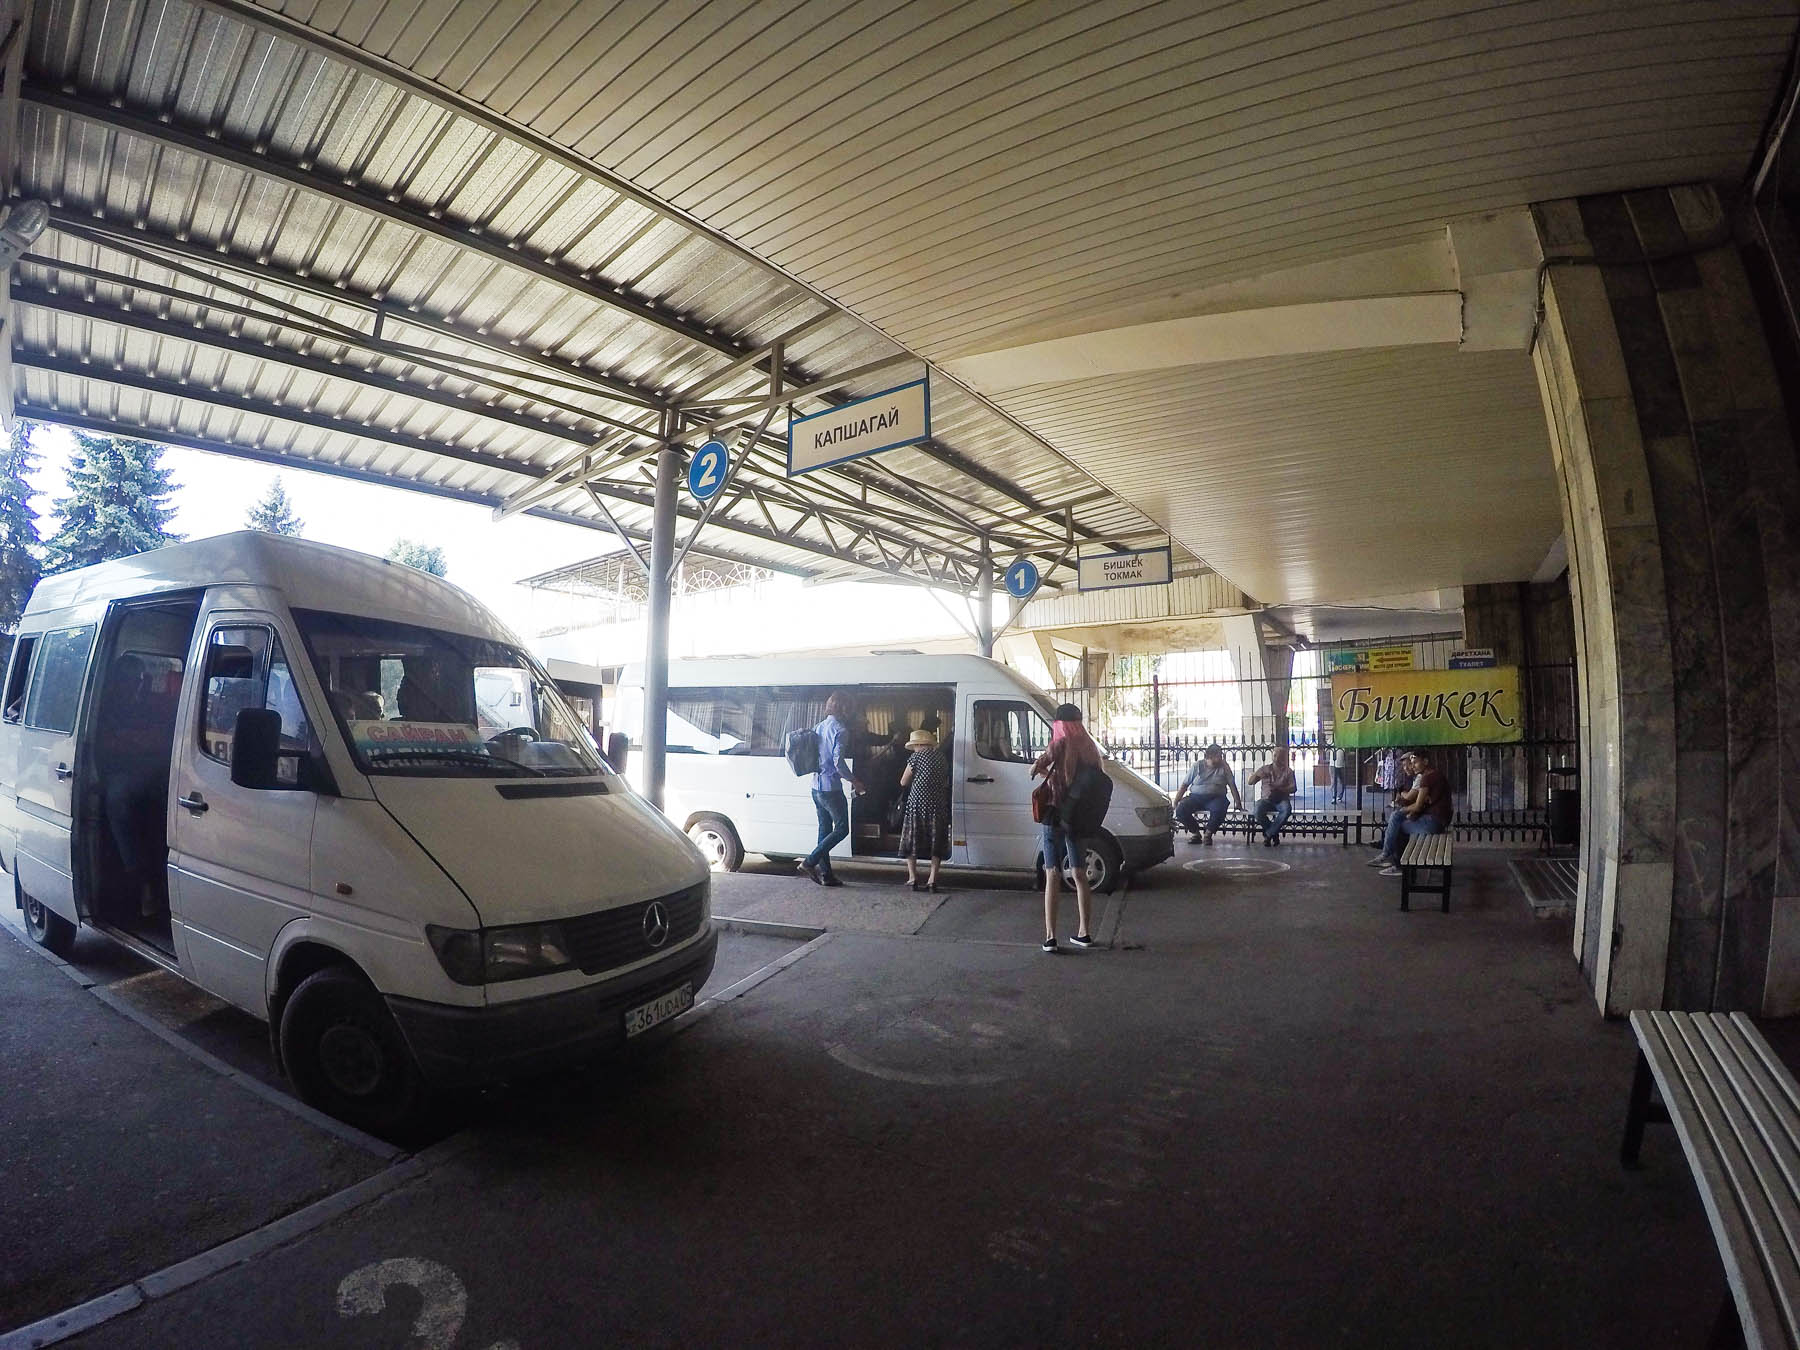 The marshrutka to the Kazakhstan - Kyrgyzstan border crossing at Kordai, at the Sayran bus station in Almaty